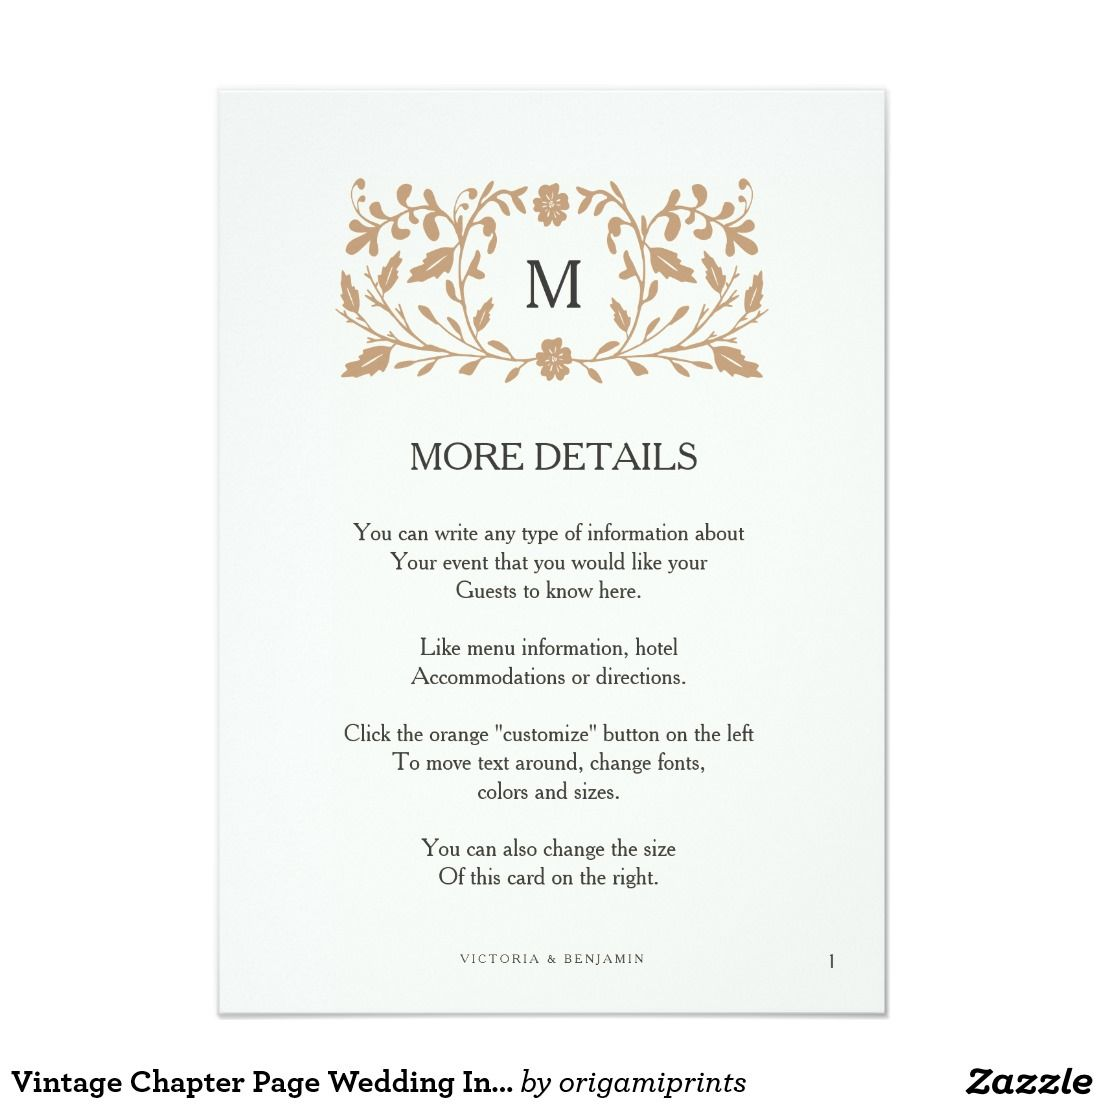 wedding invitation suites should include all of the vital details